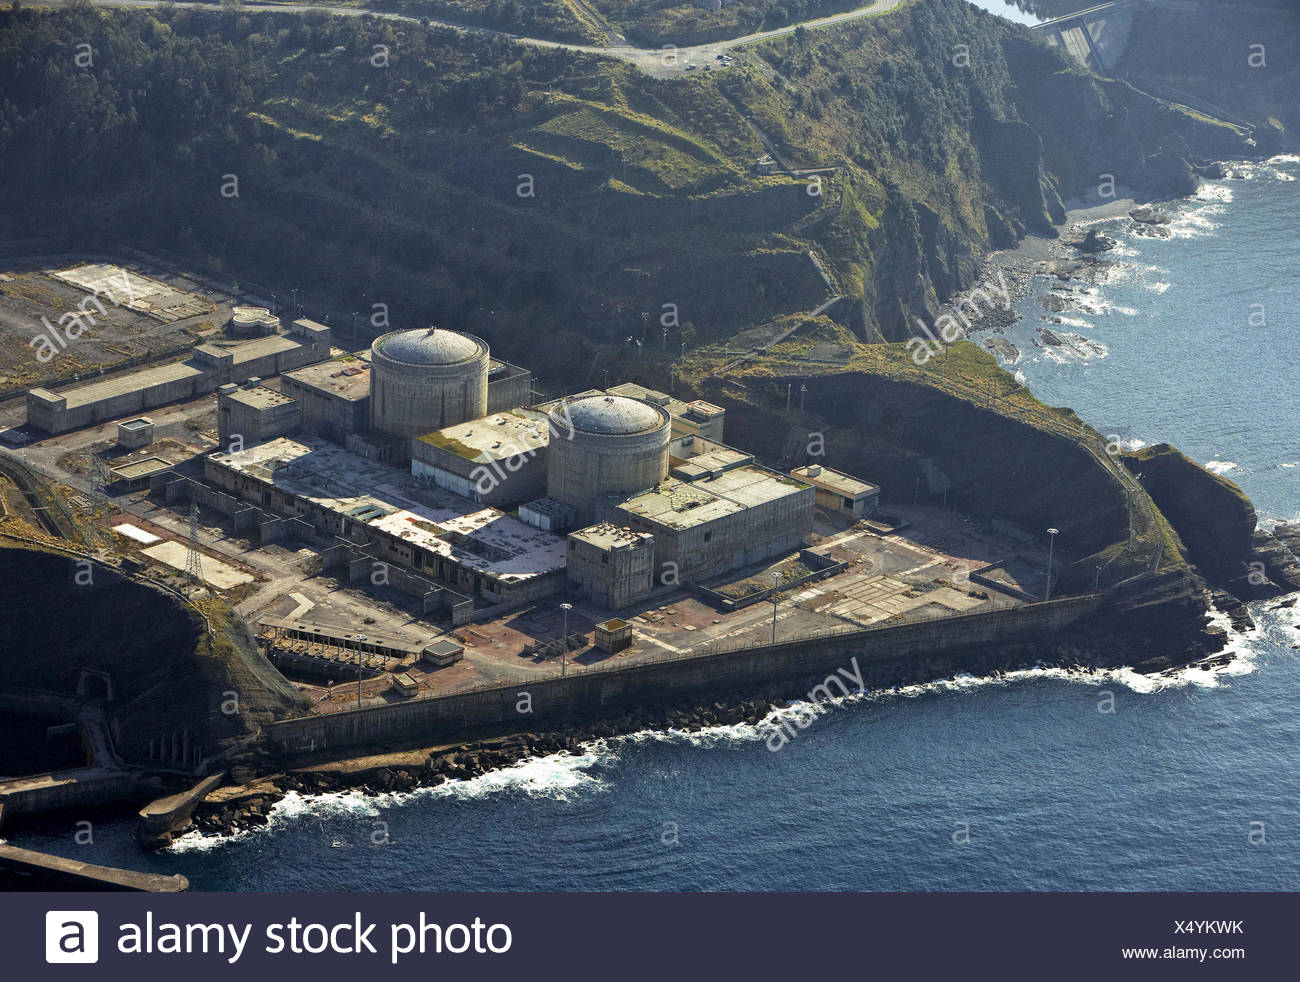 Unfnished nuclear Power Plant, Lemoiz, Biscay, Basque country, Spain Stock Photo